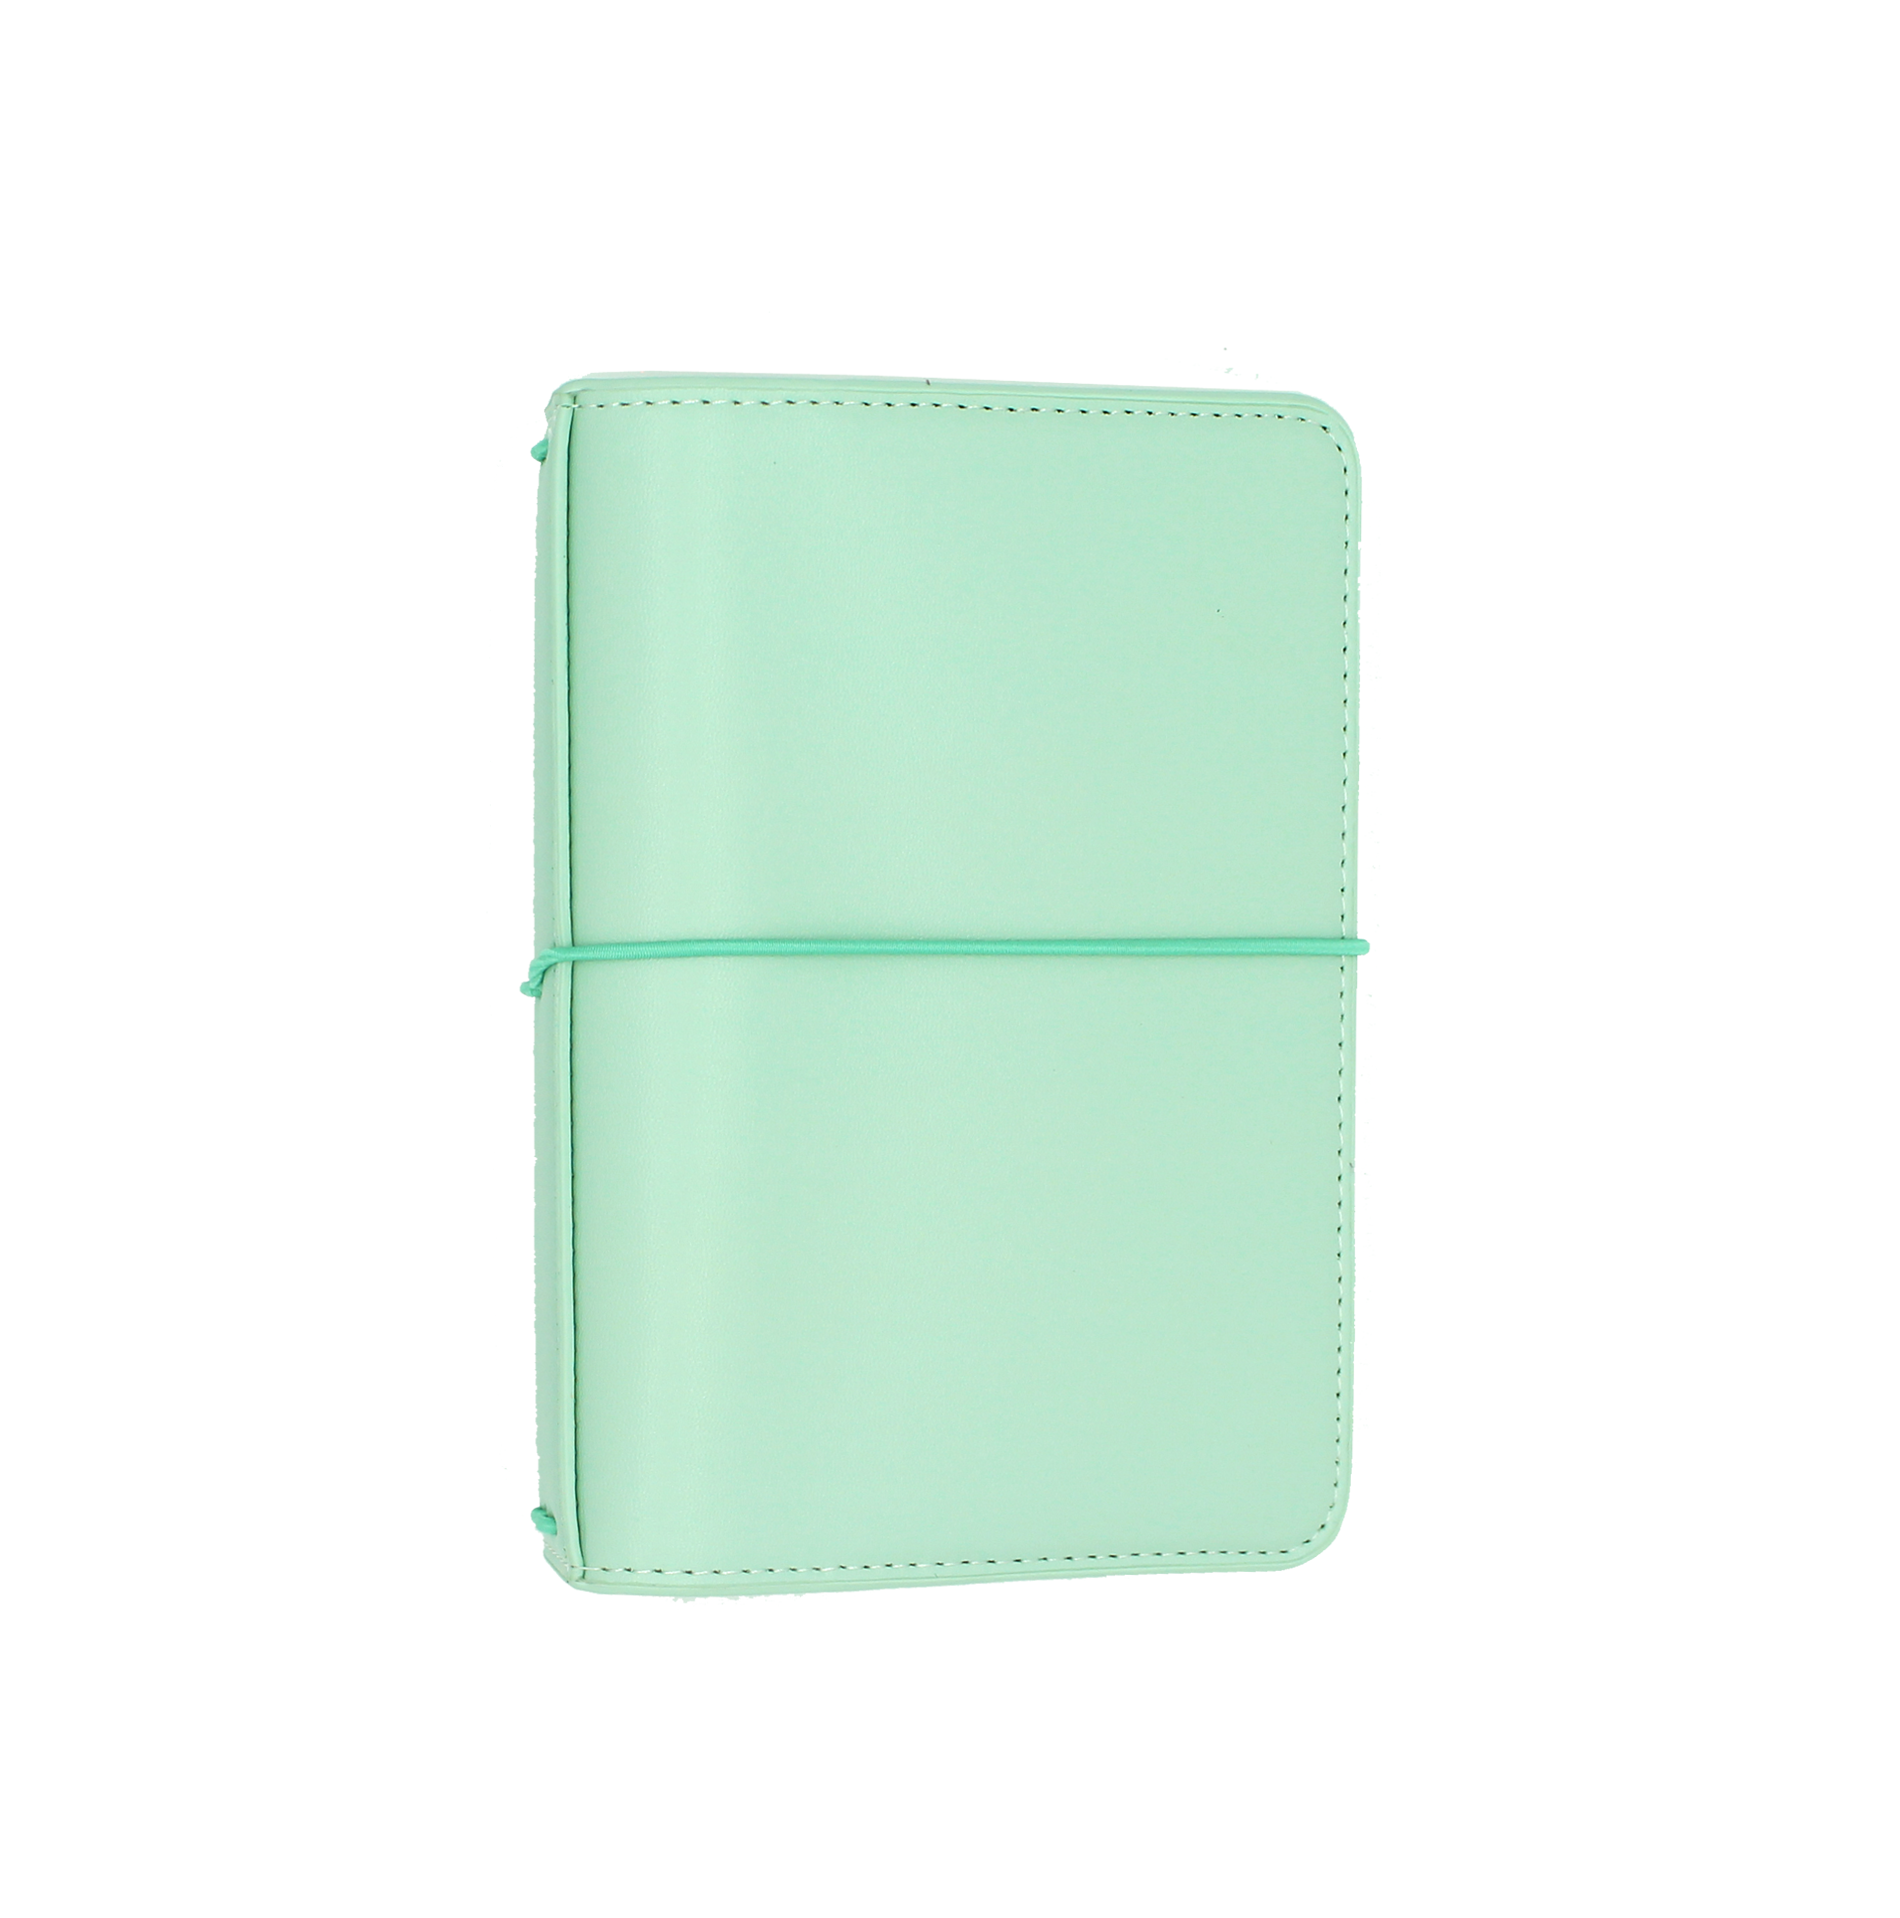 A6 Travelers Notebook - Peppermint